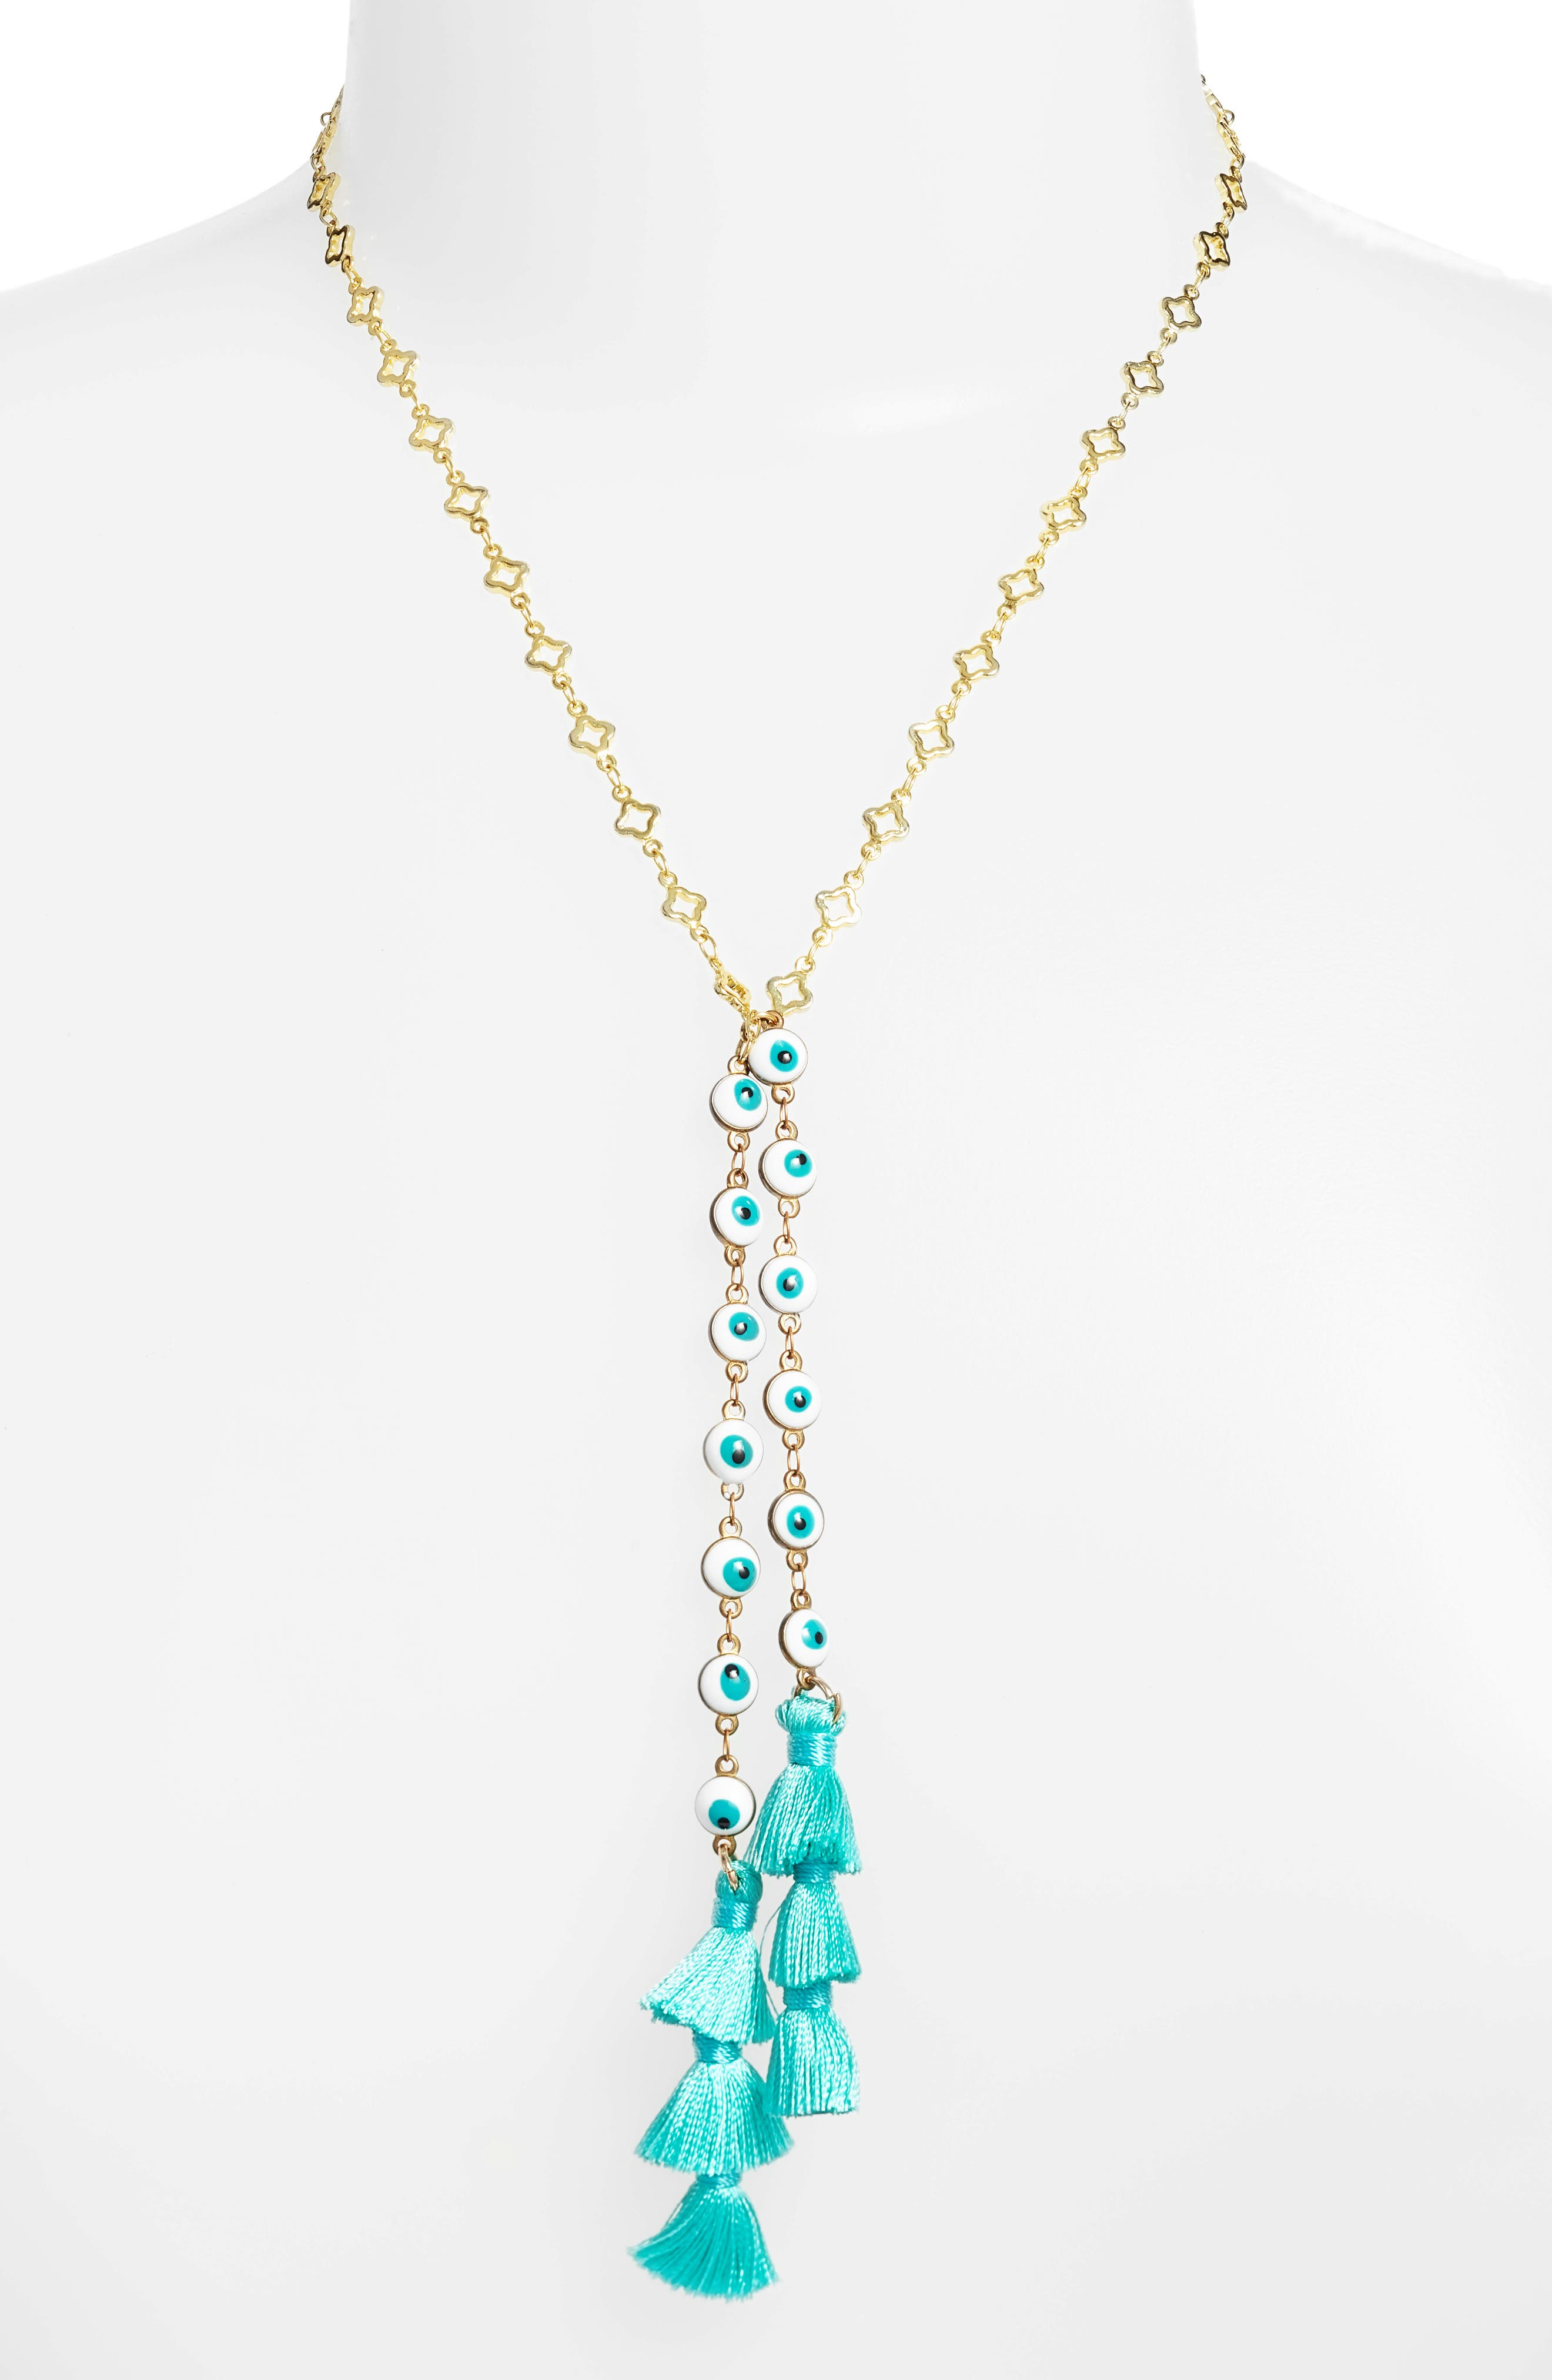 Trieste Bolo Necklace,                             Main thumbnail 1, color,                             Gold/ Teal